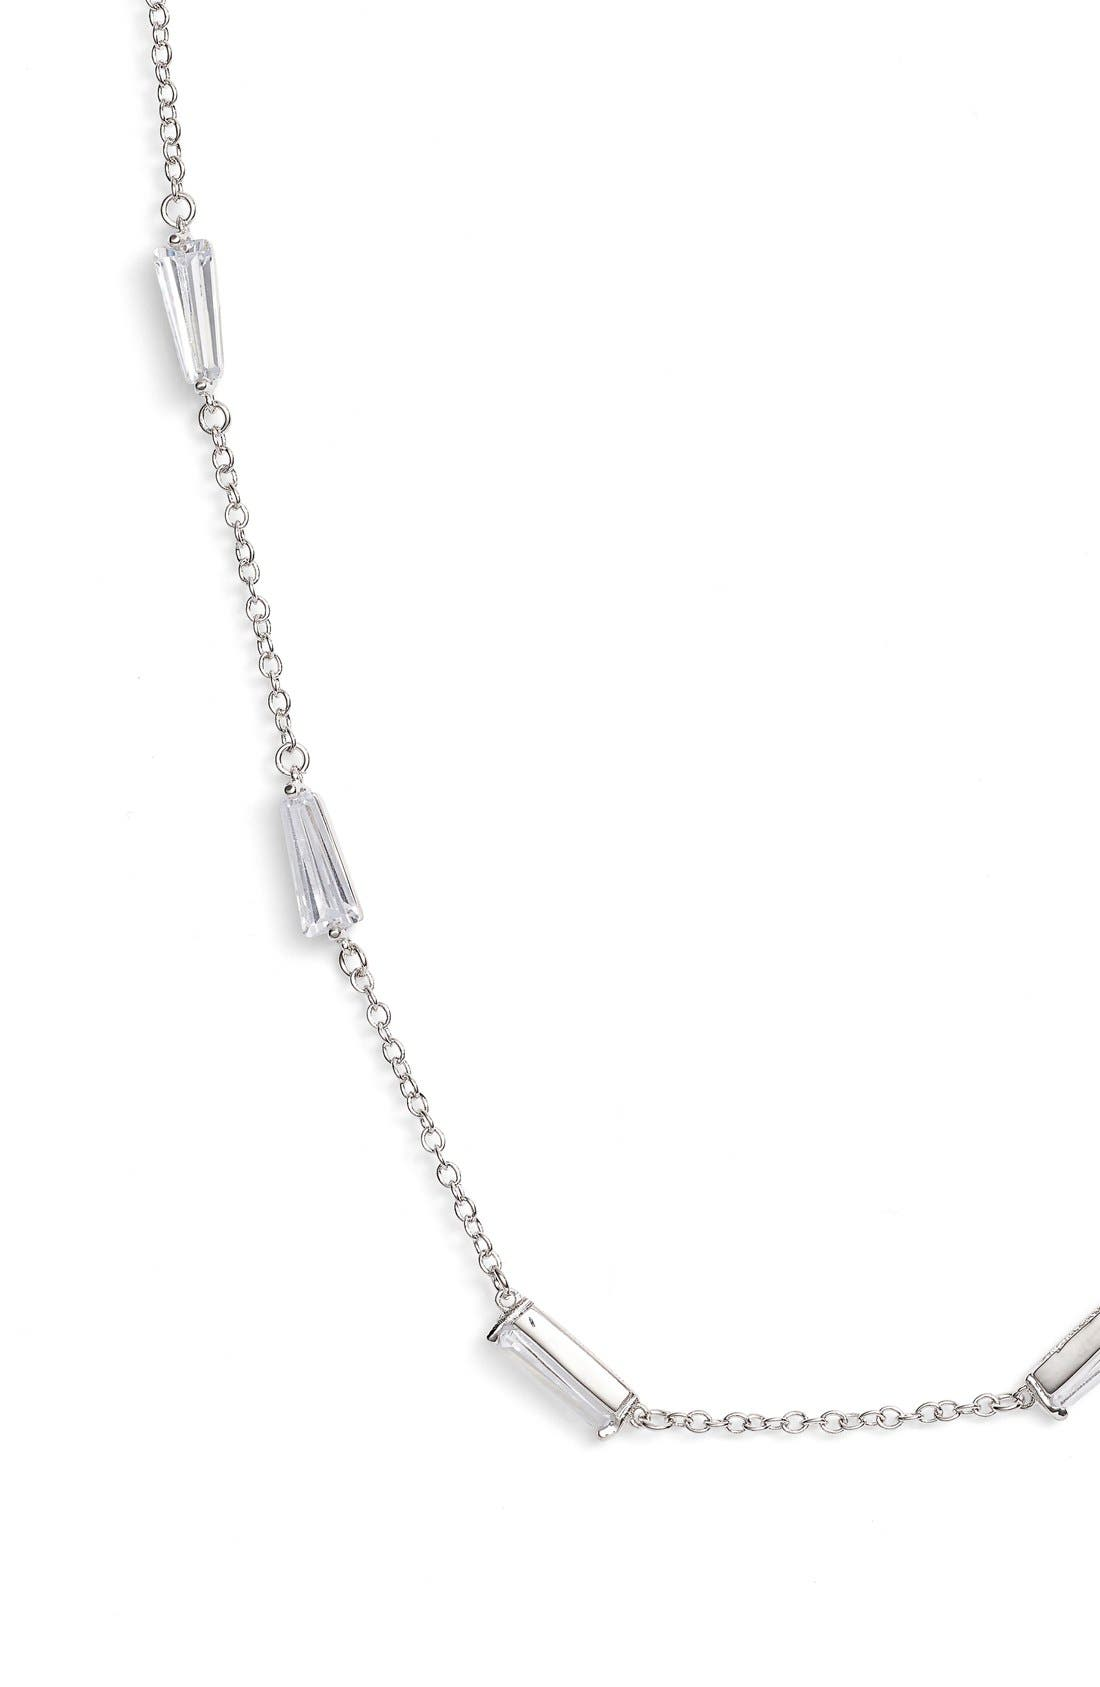 Long Baguette Cubic Zirconia Station Necklace,                             Alternate thumbnail 2, color,                             040